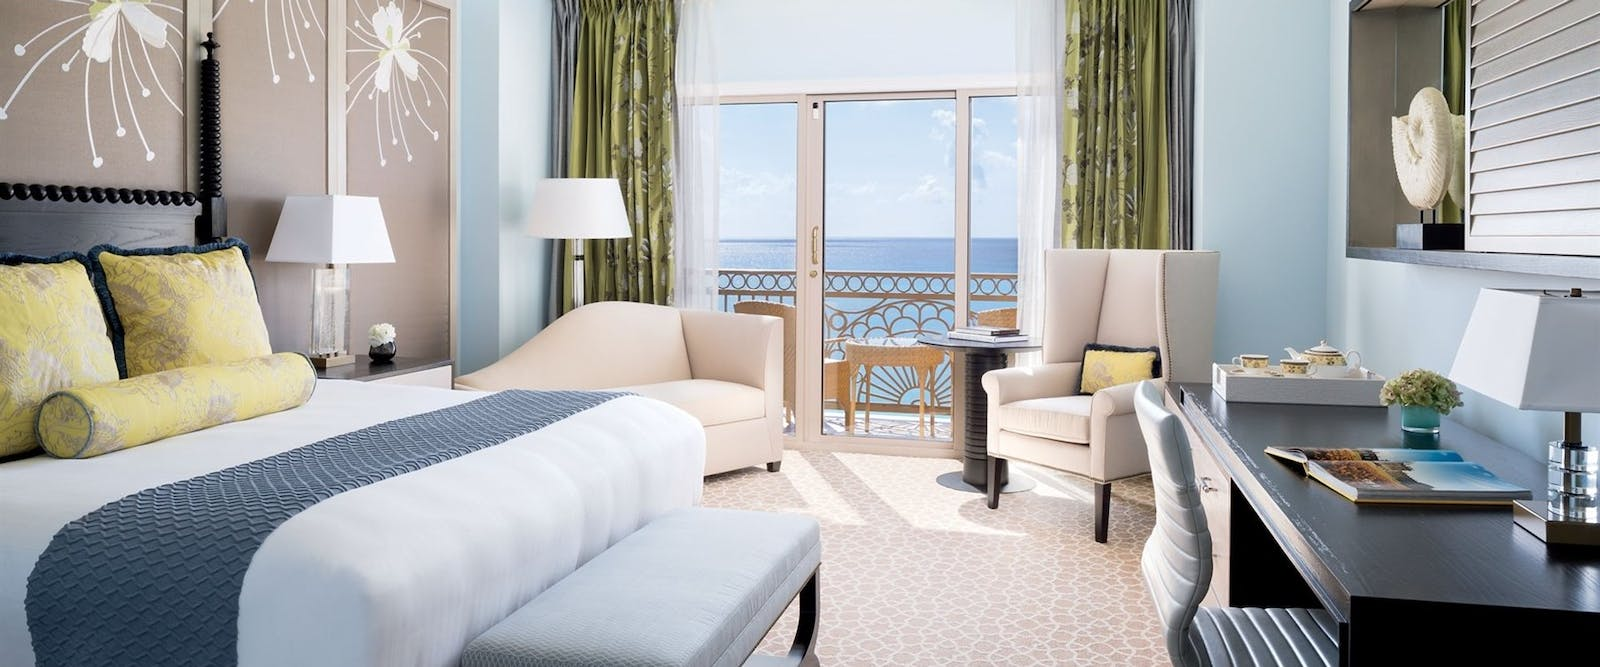 Ocean Front Guest Room at The Ritz-Carlton, Grand Cayman, Cayman Islands